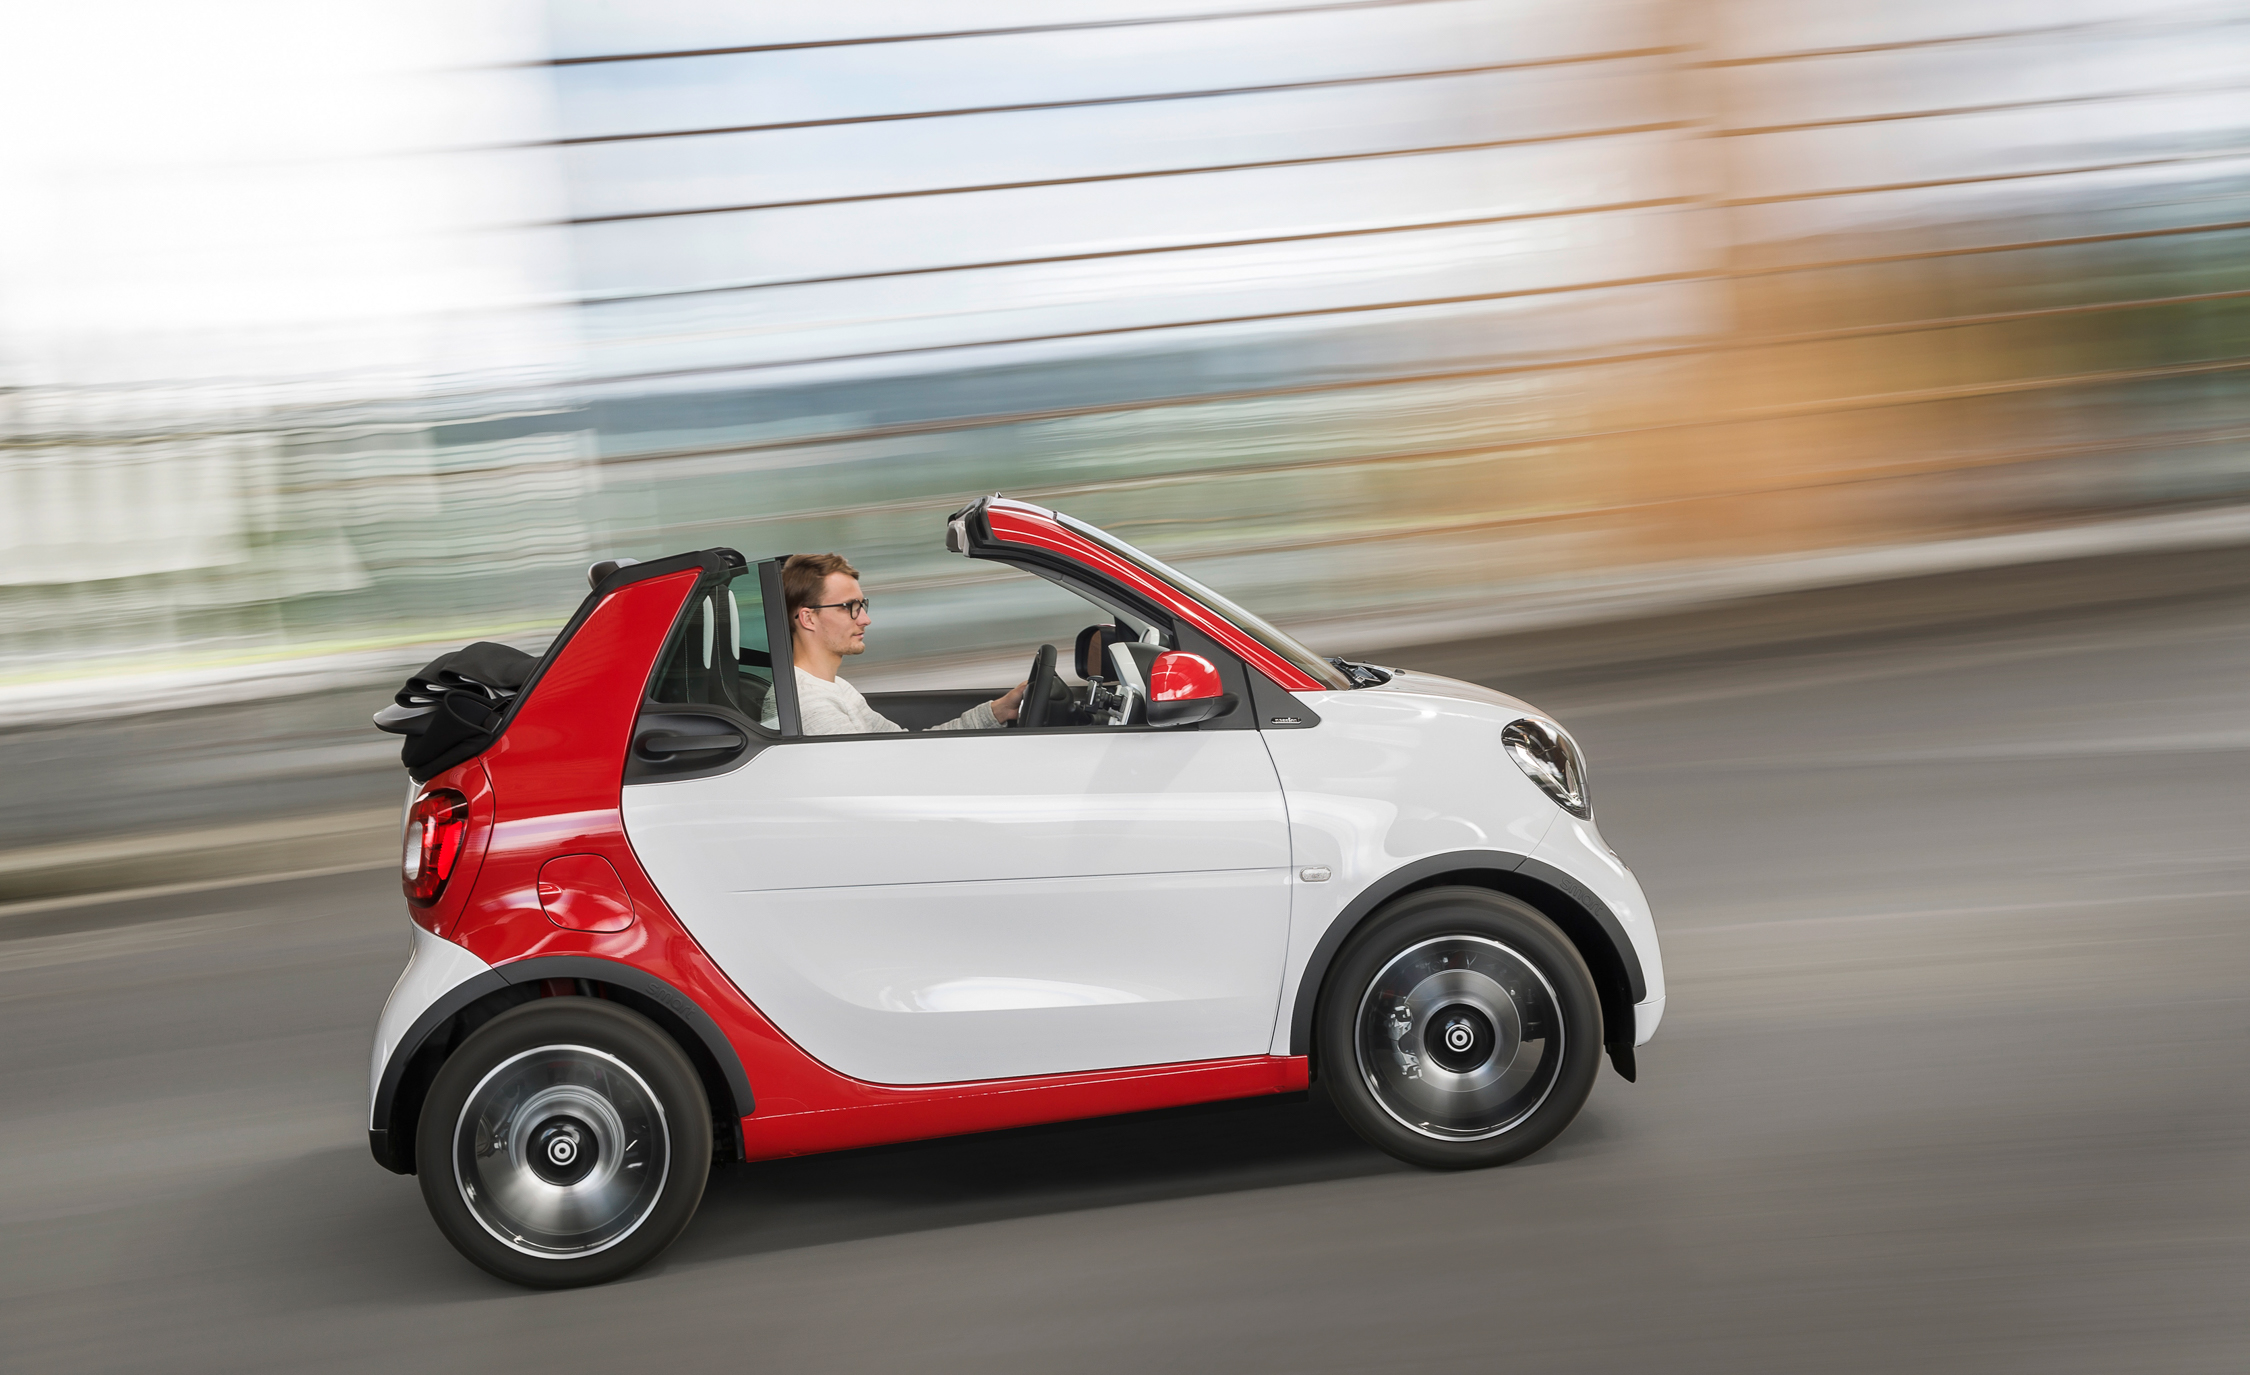 2017 Smart fortwo coupe photo - 3